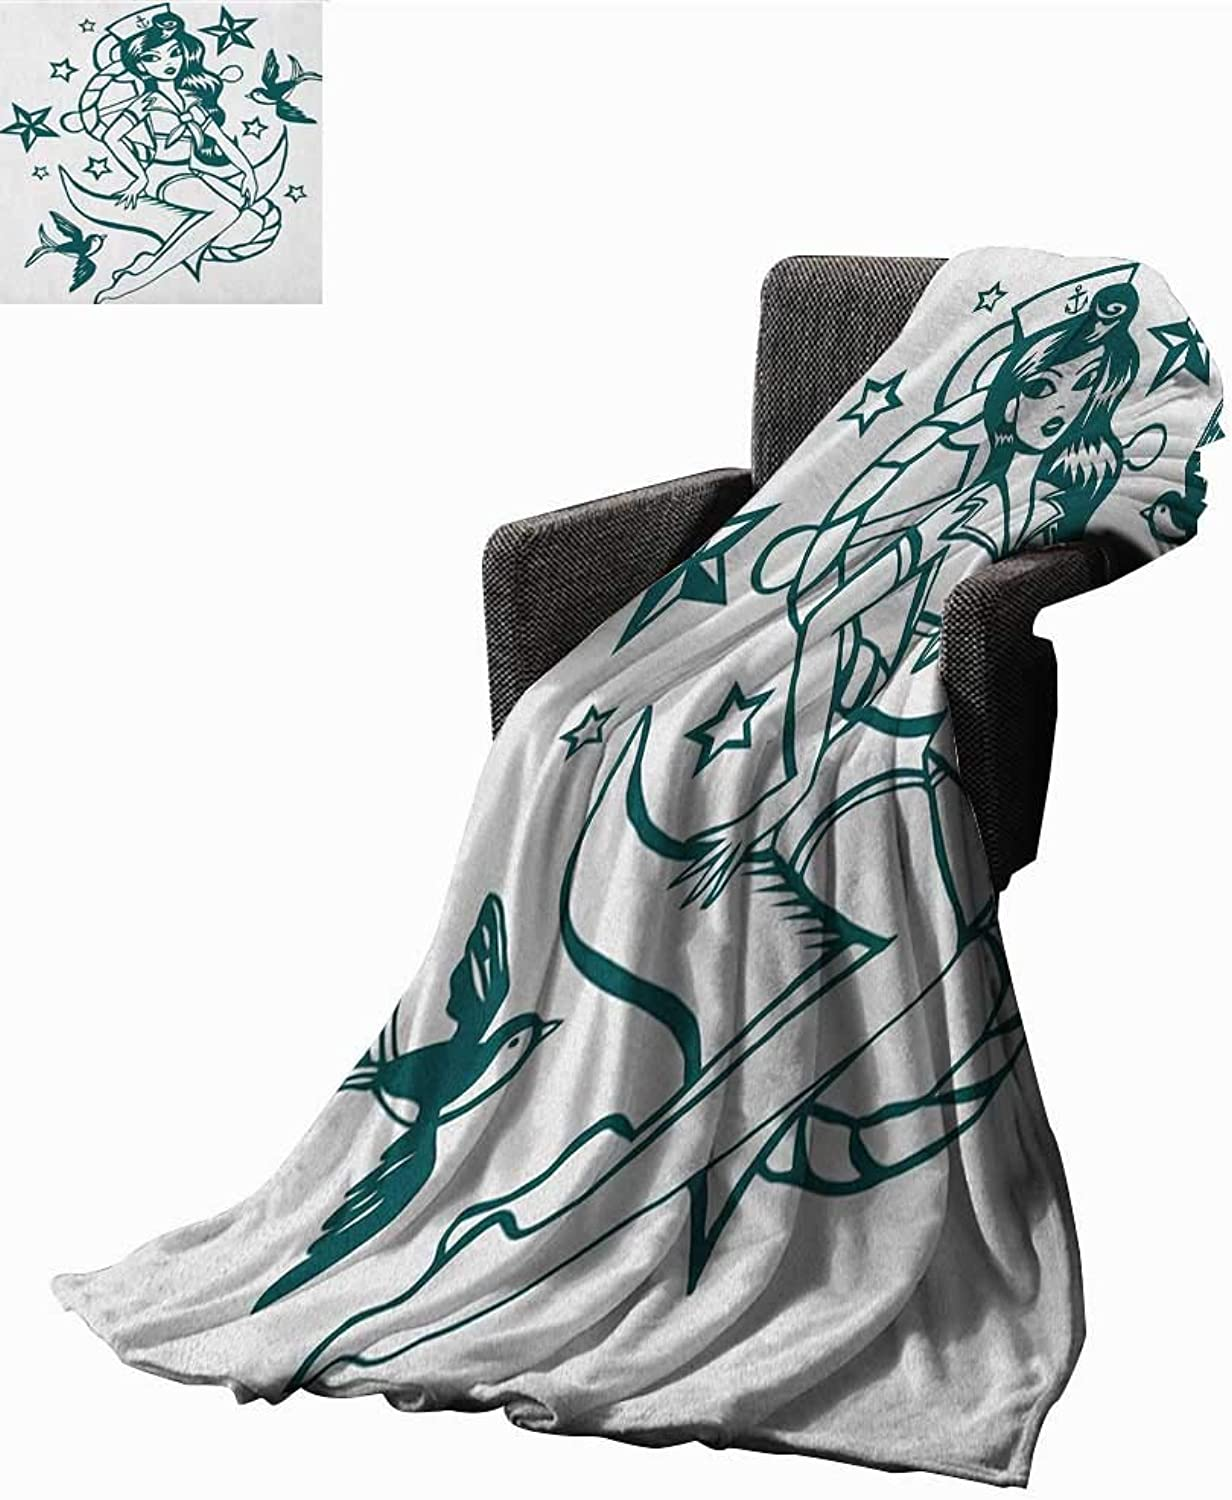 ScottDecor Bed or Couch 60  x 50 Anchor Digital Printing Blanket Pin up Girl Nautical Sailor Suit Surrounded by Swallow Birds Stars Hand Drawn Print Digital Printing Blanket Dark bluee White